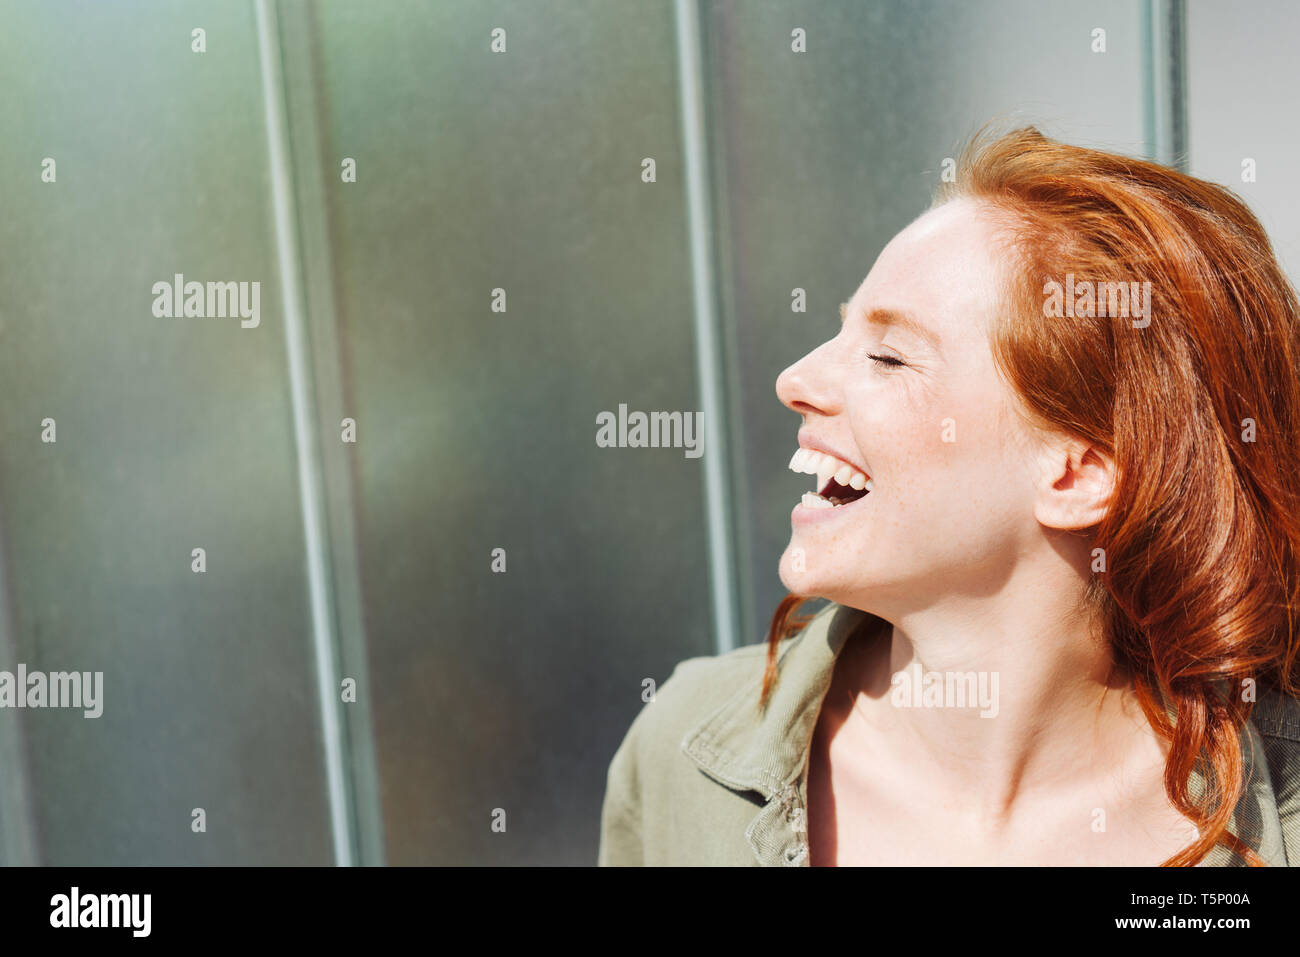 Happy young woman laughing merrily as she stands in front of a commercial building with her head thrown back and eyes closed - Stock Image